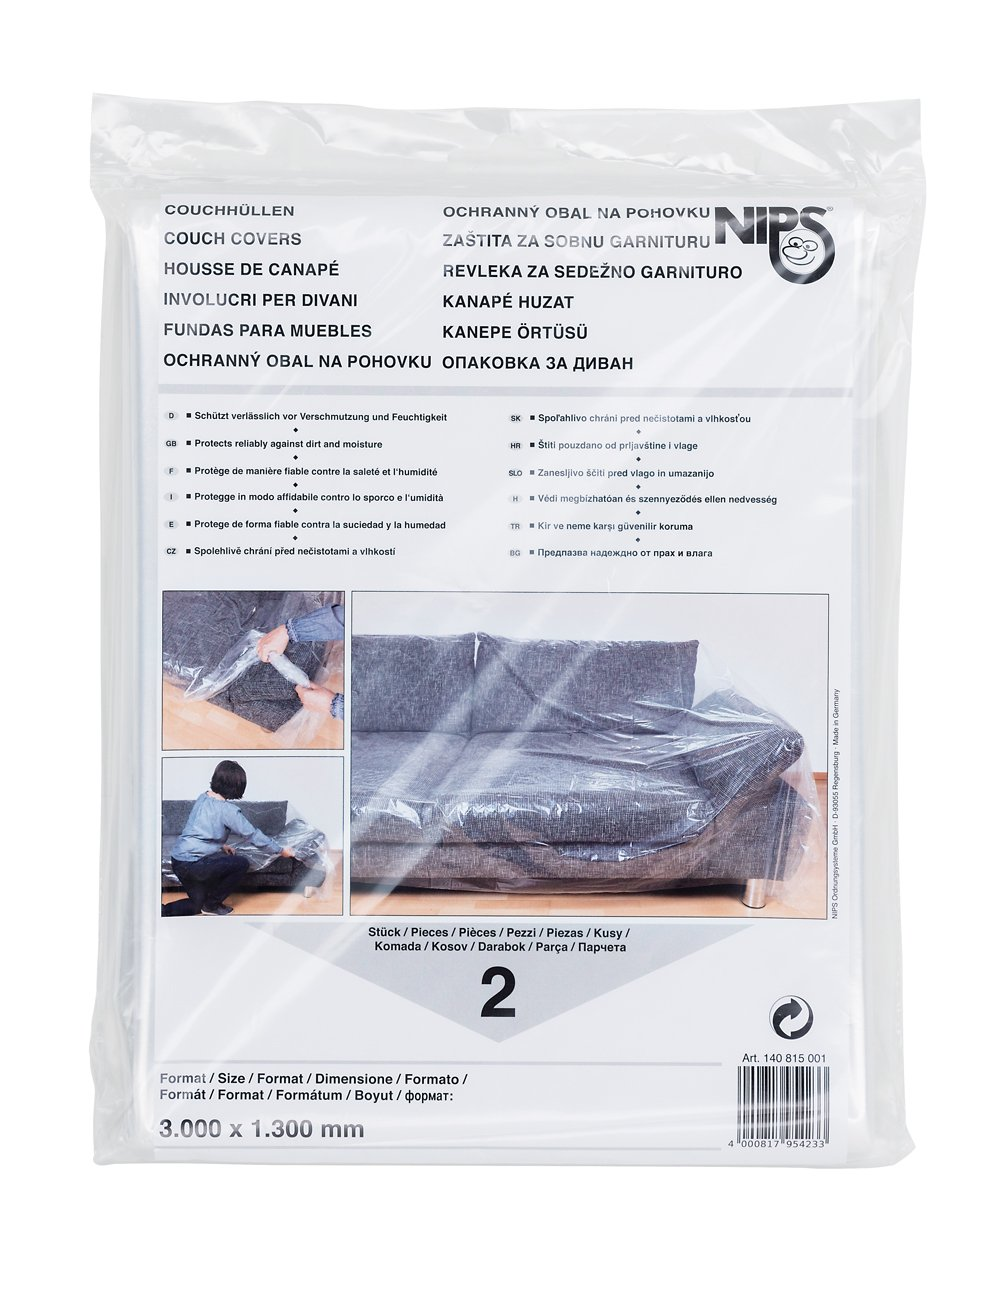 NIPS 140815001 Couchhü lle 2er Packung (Grö ß e 3000 x 1300 mm), LDPE-Folie transparent